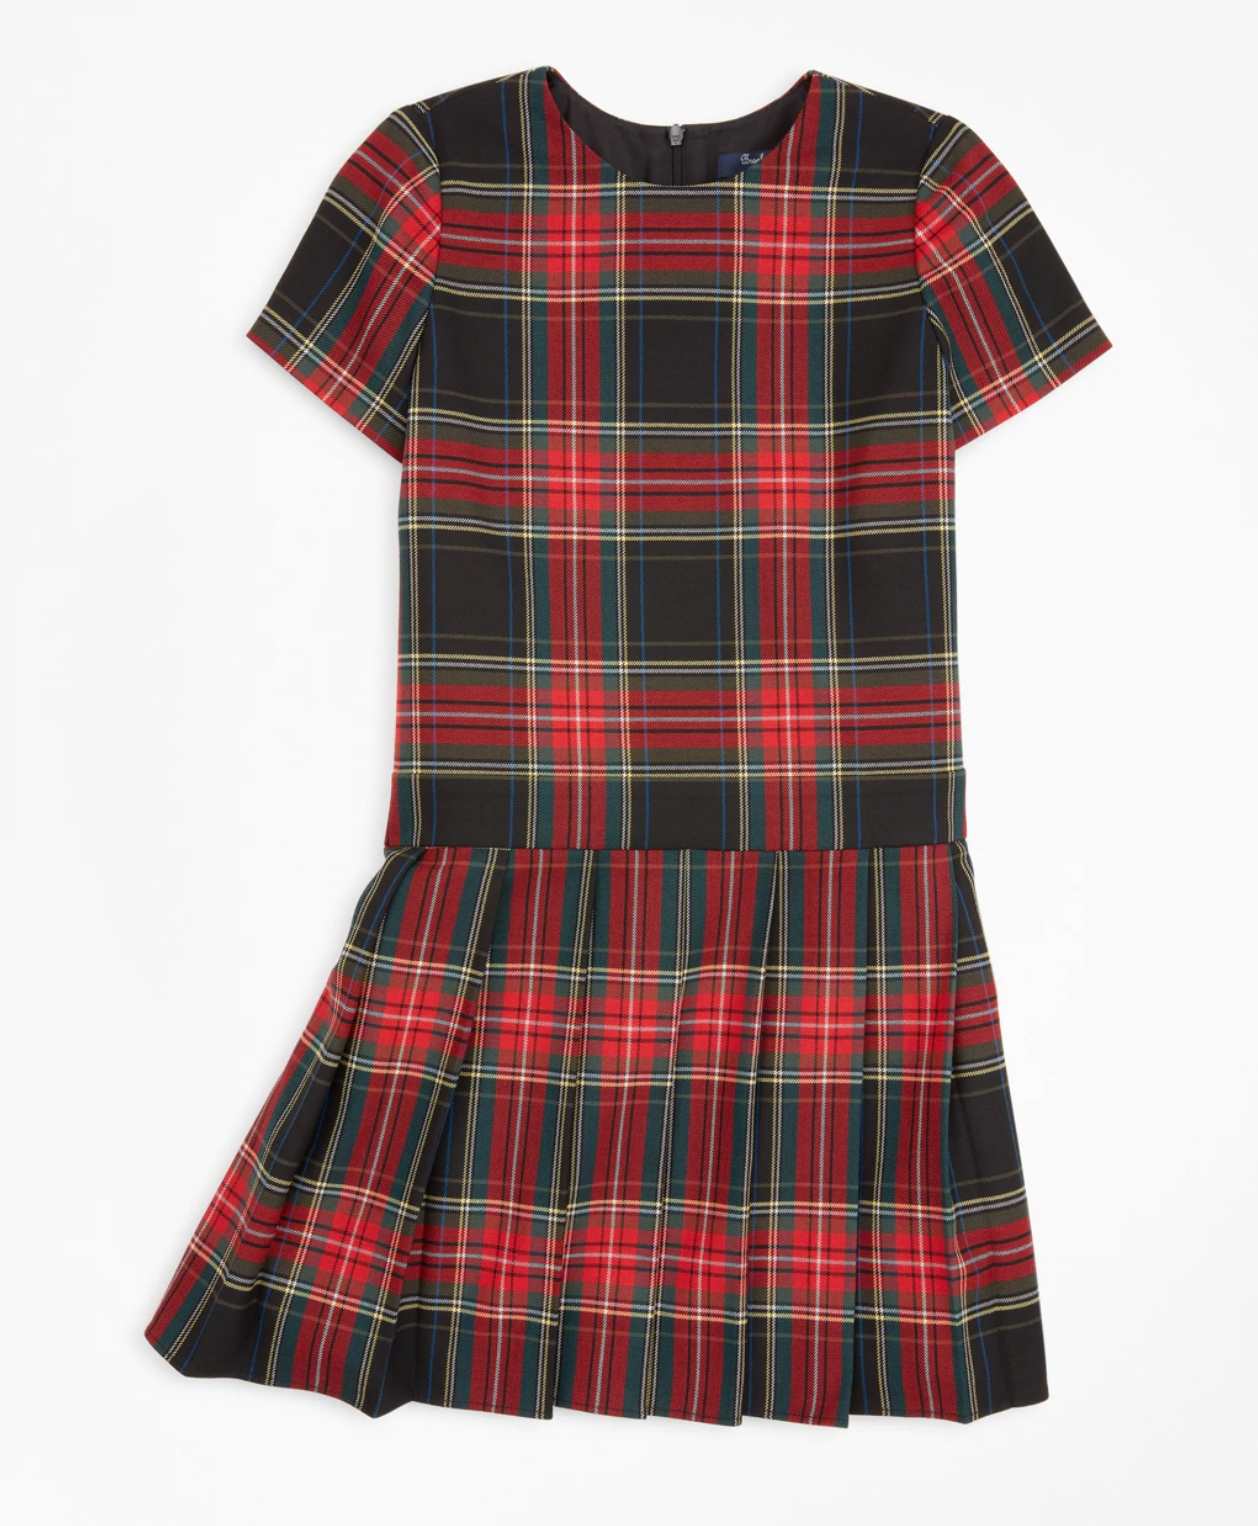 BUY: $68.95; brooksbrothers.com                             A festive tartan print, drop waist, and plenty of pleats make this a winter night's dream. Add tights and a velvet hair bow to finish the look.